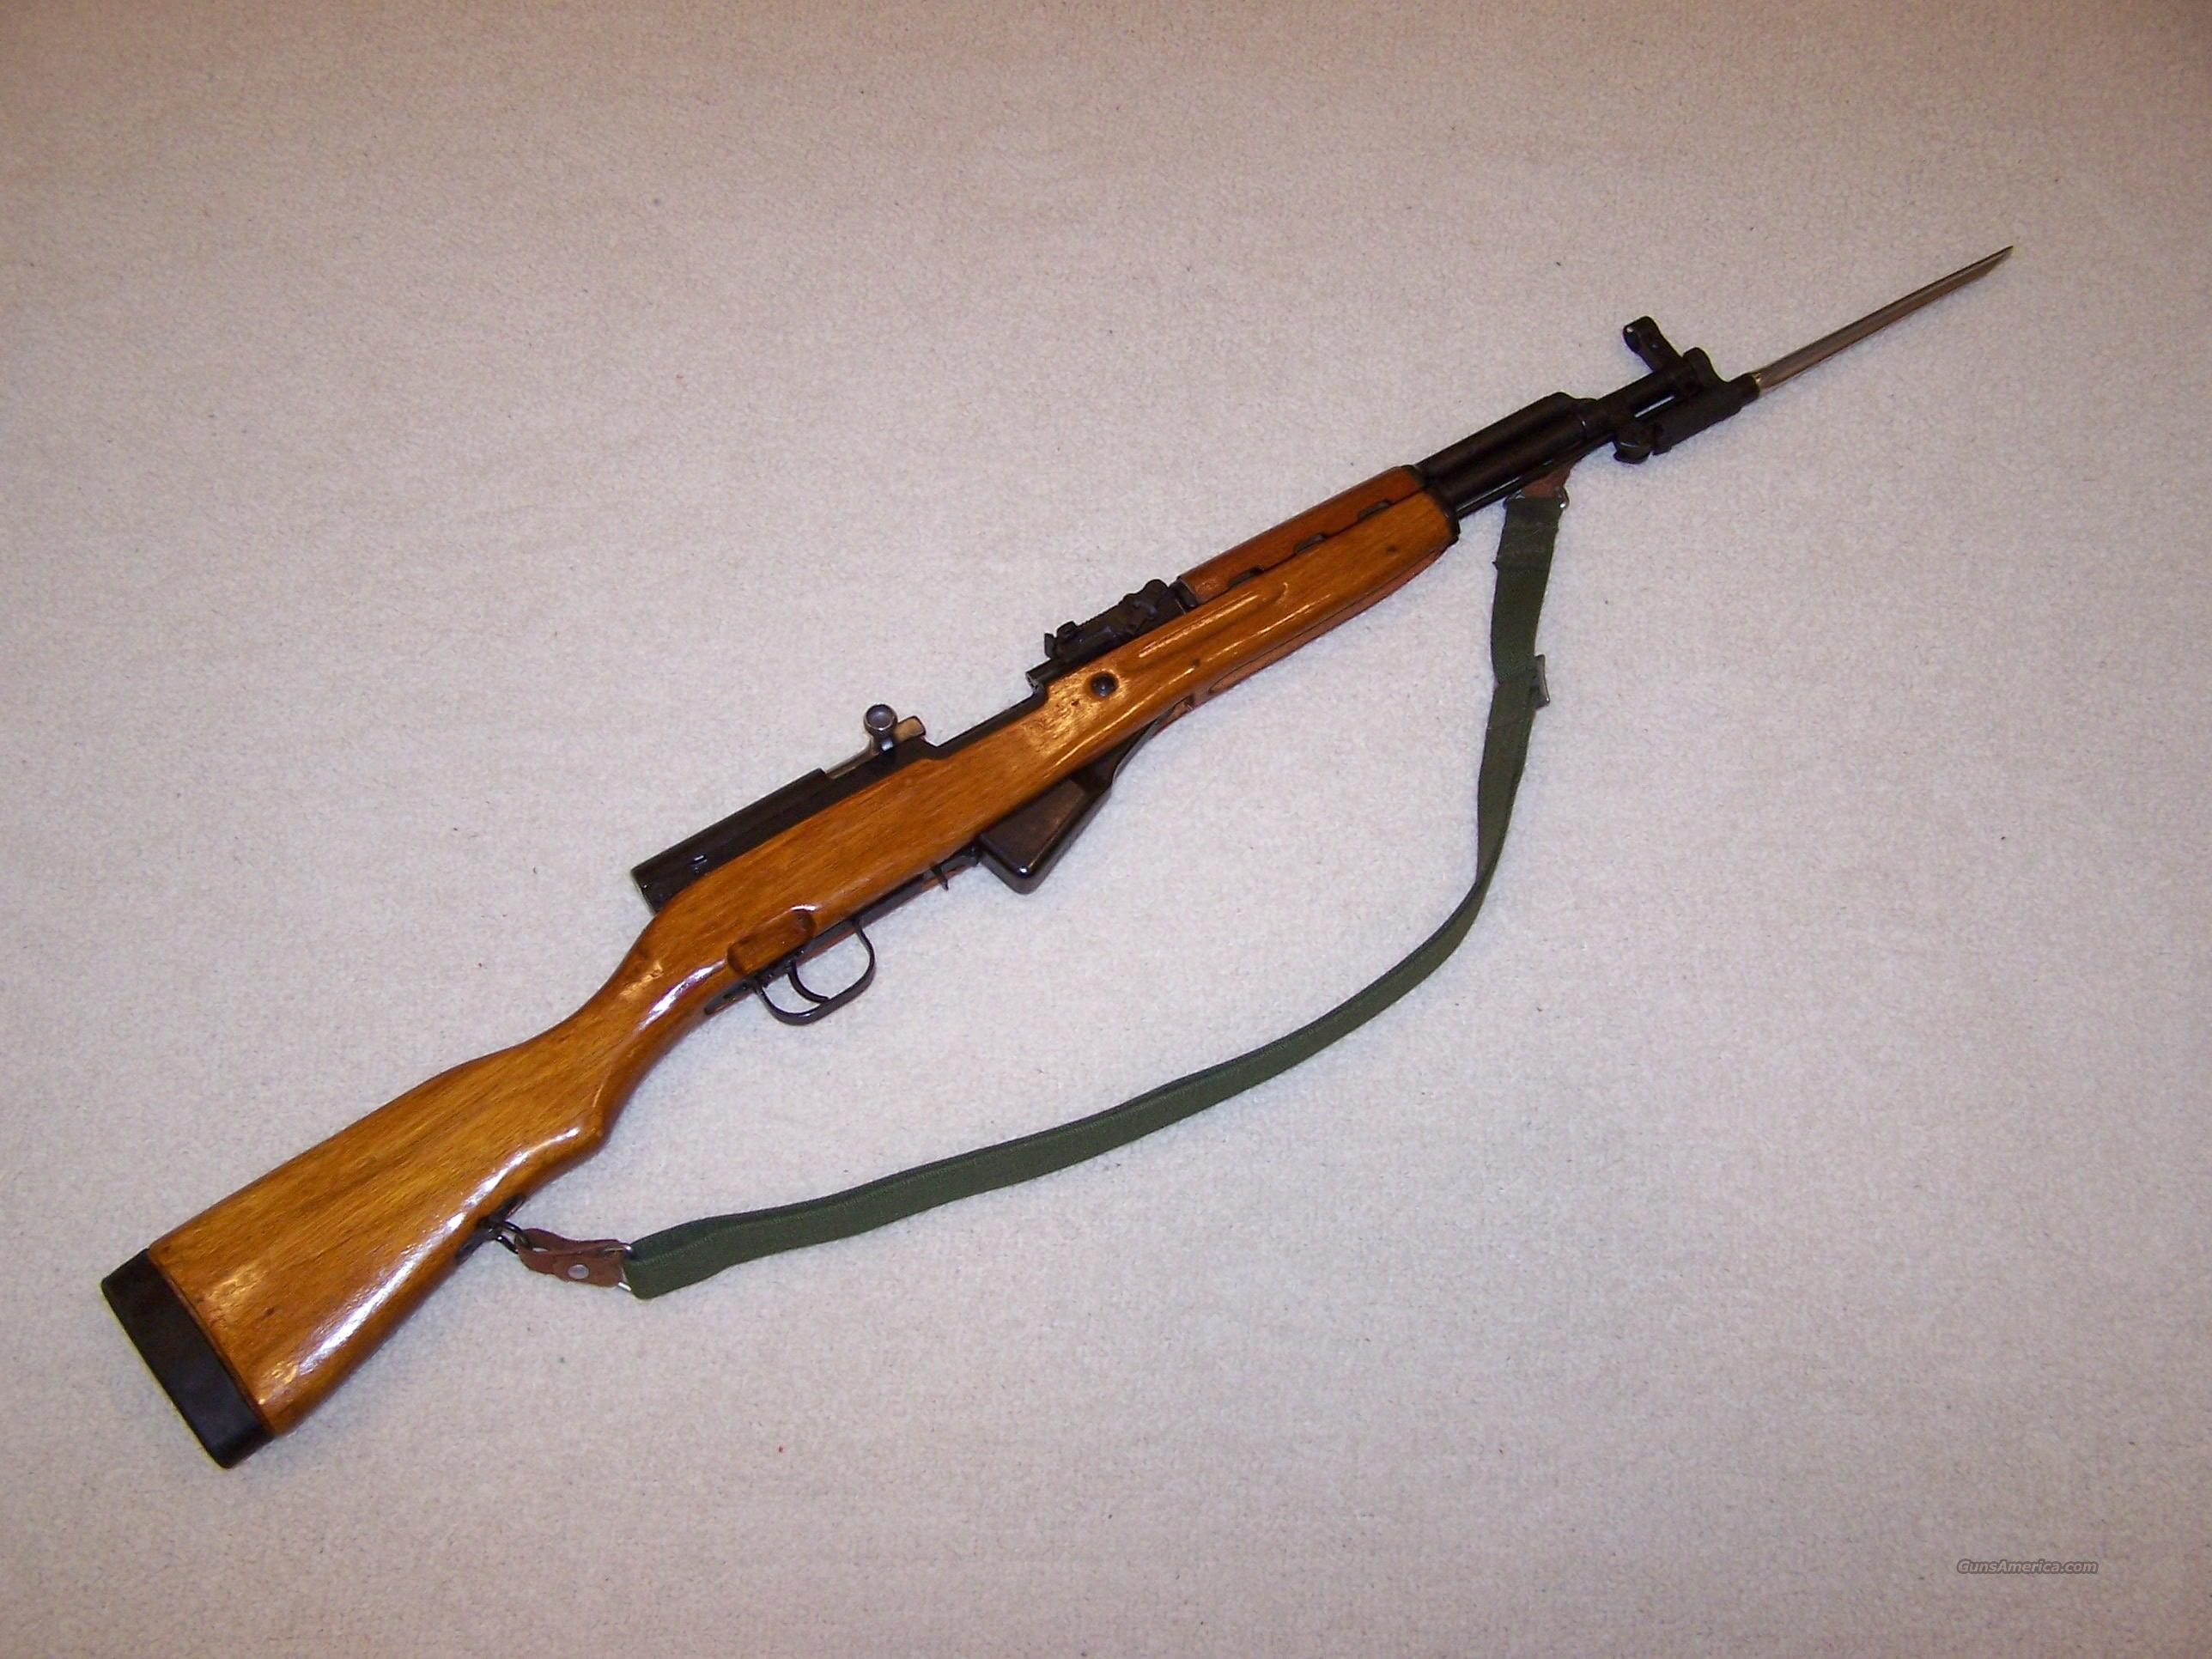 Chinese SKS Type 56 Paratrooper $340 OBO for sale